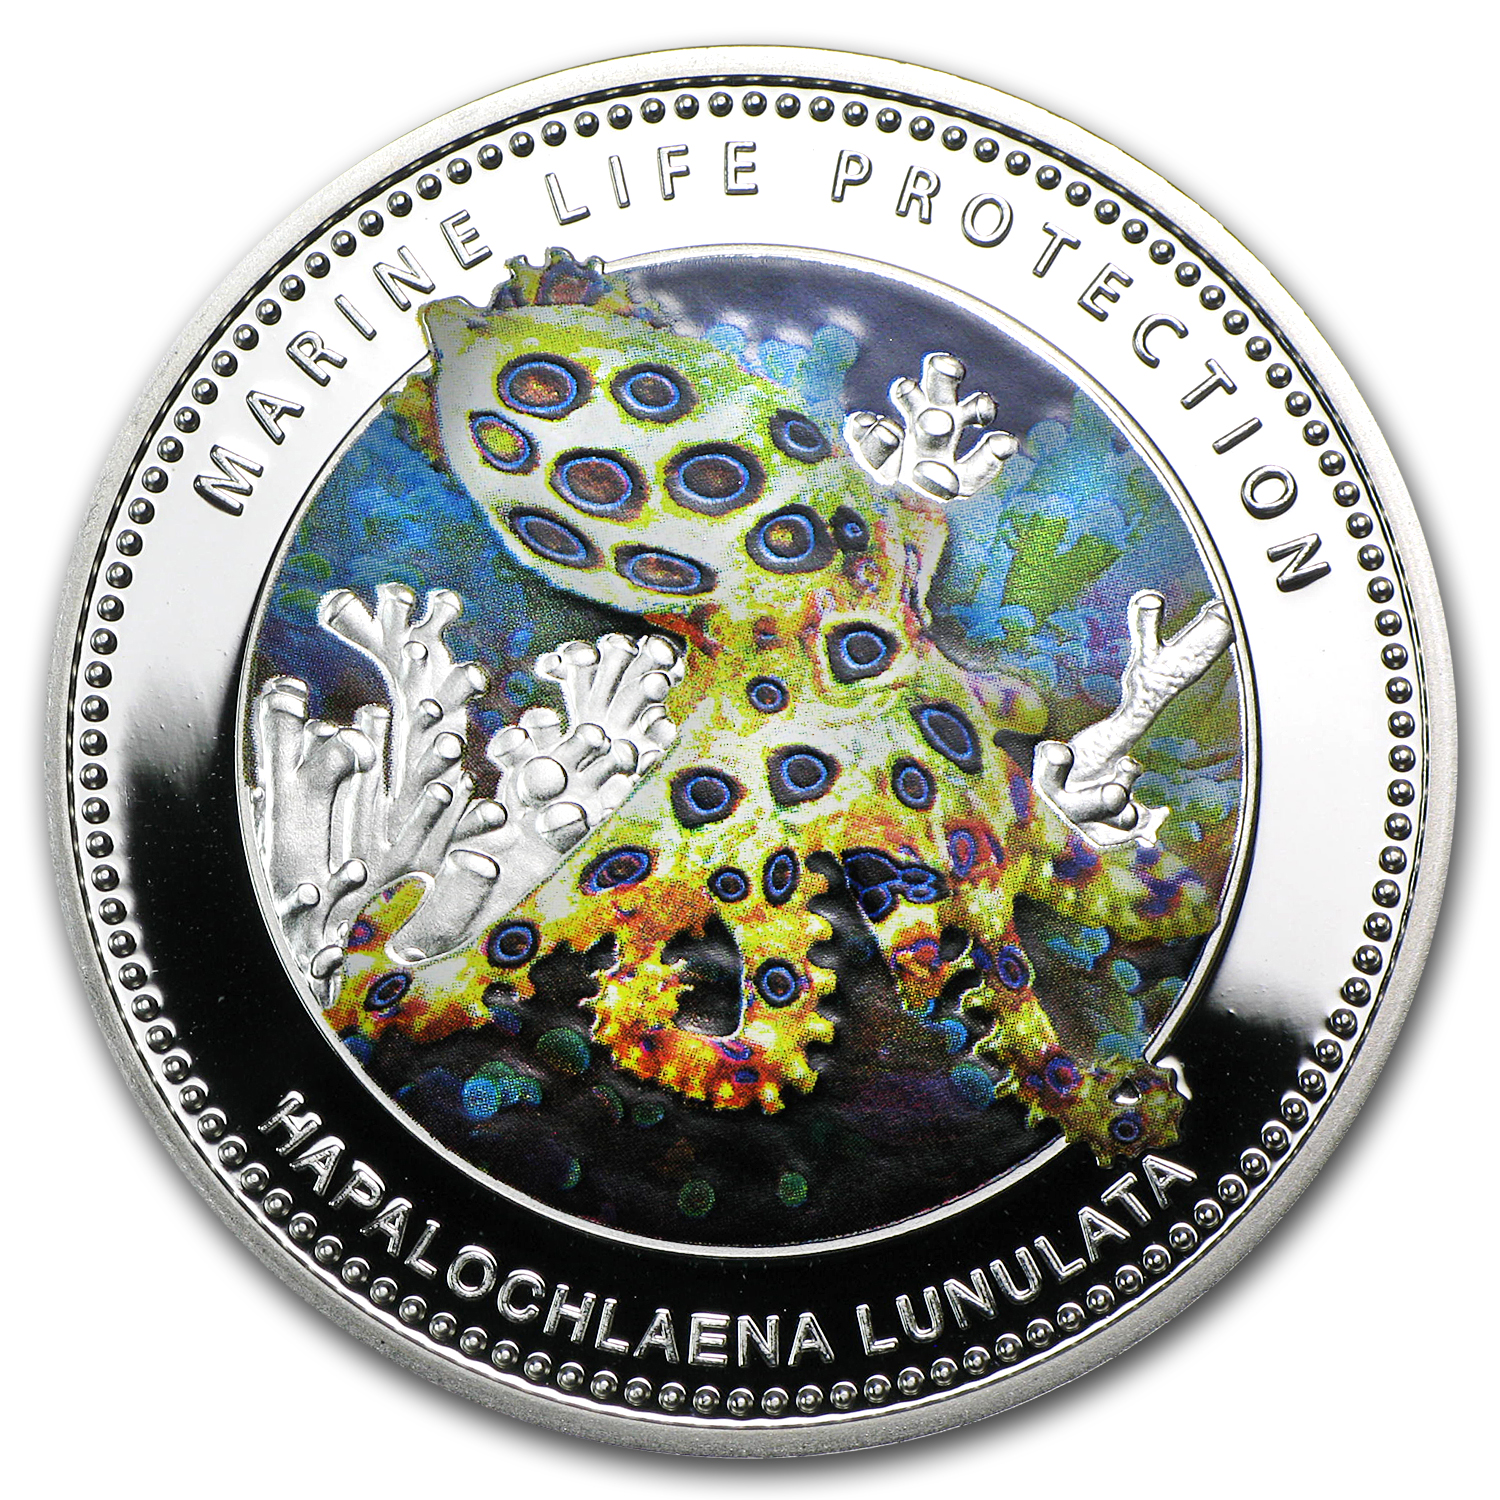 2012 Palau Silver $5 Marine Life Protection Blue Ringed Octopus